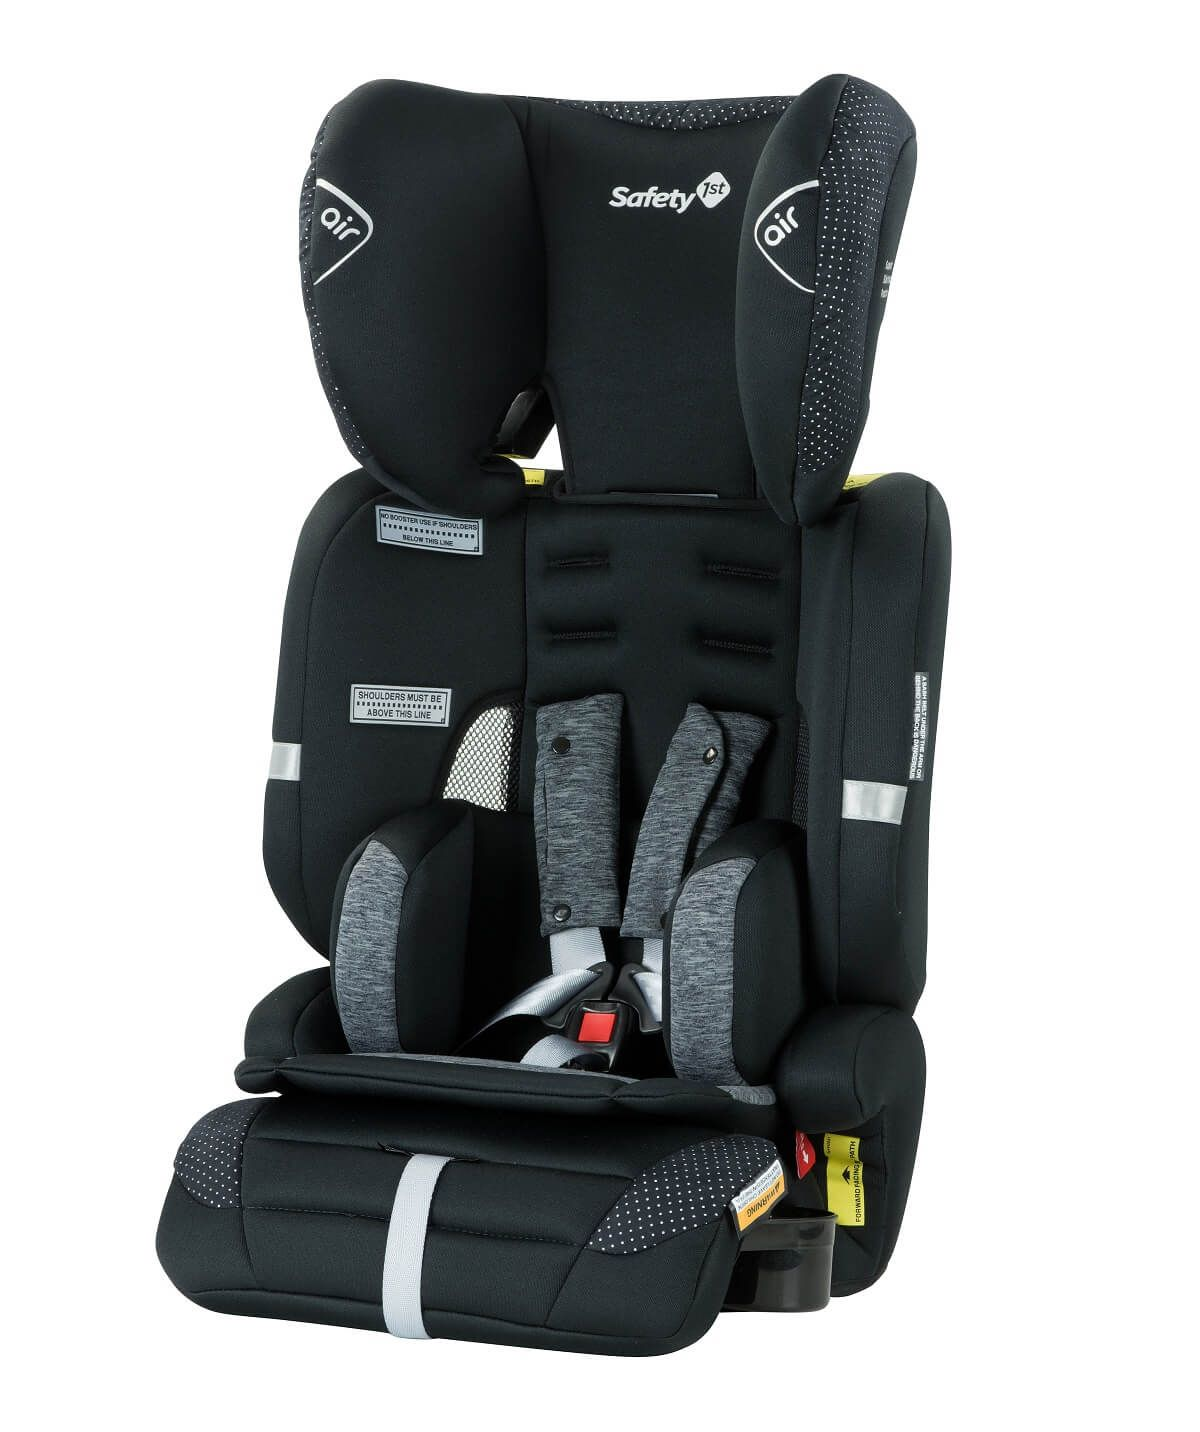 Safety 1st Prime AP Car Seat Review | Car seats, Safety and Cars